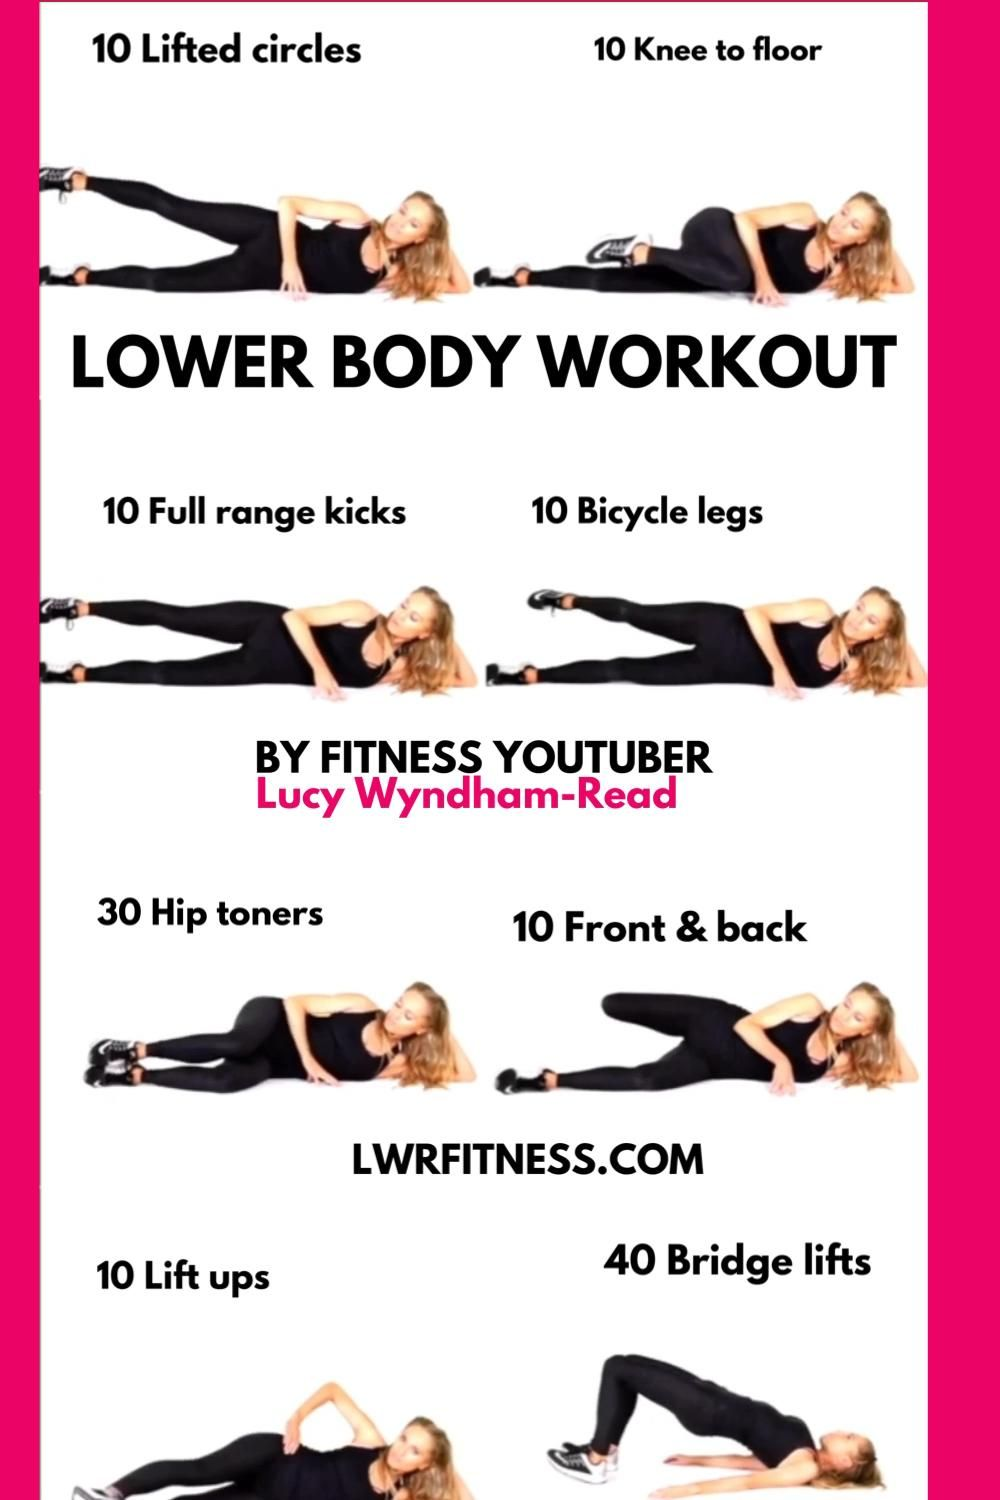 LOWER BODY WORKOUT AT HOME – effective lower body exercises for legs and glutes at home.